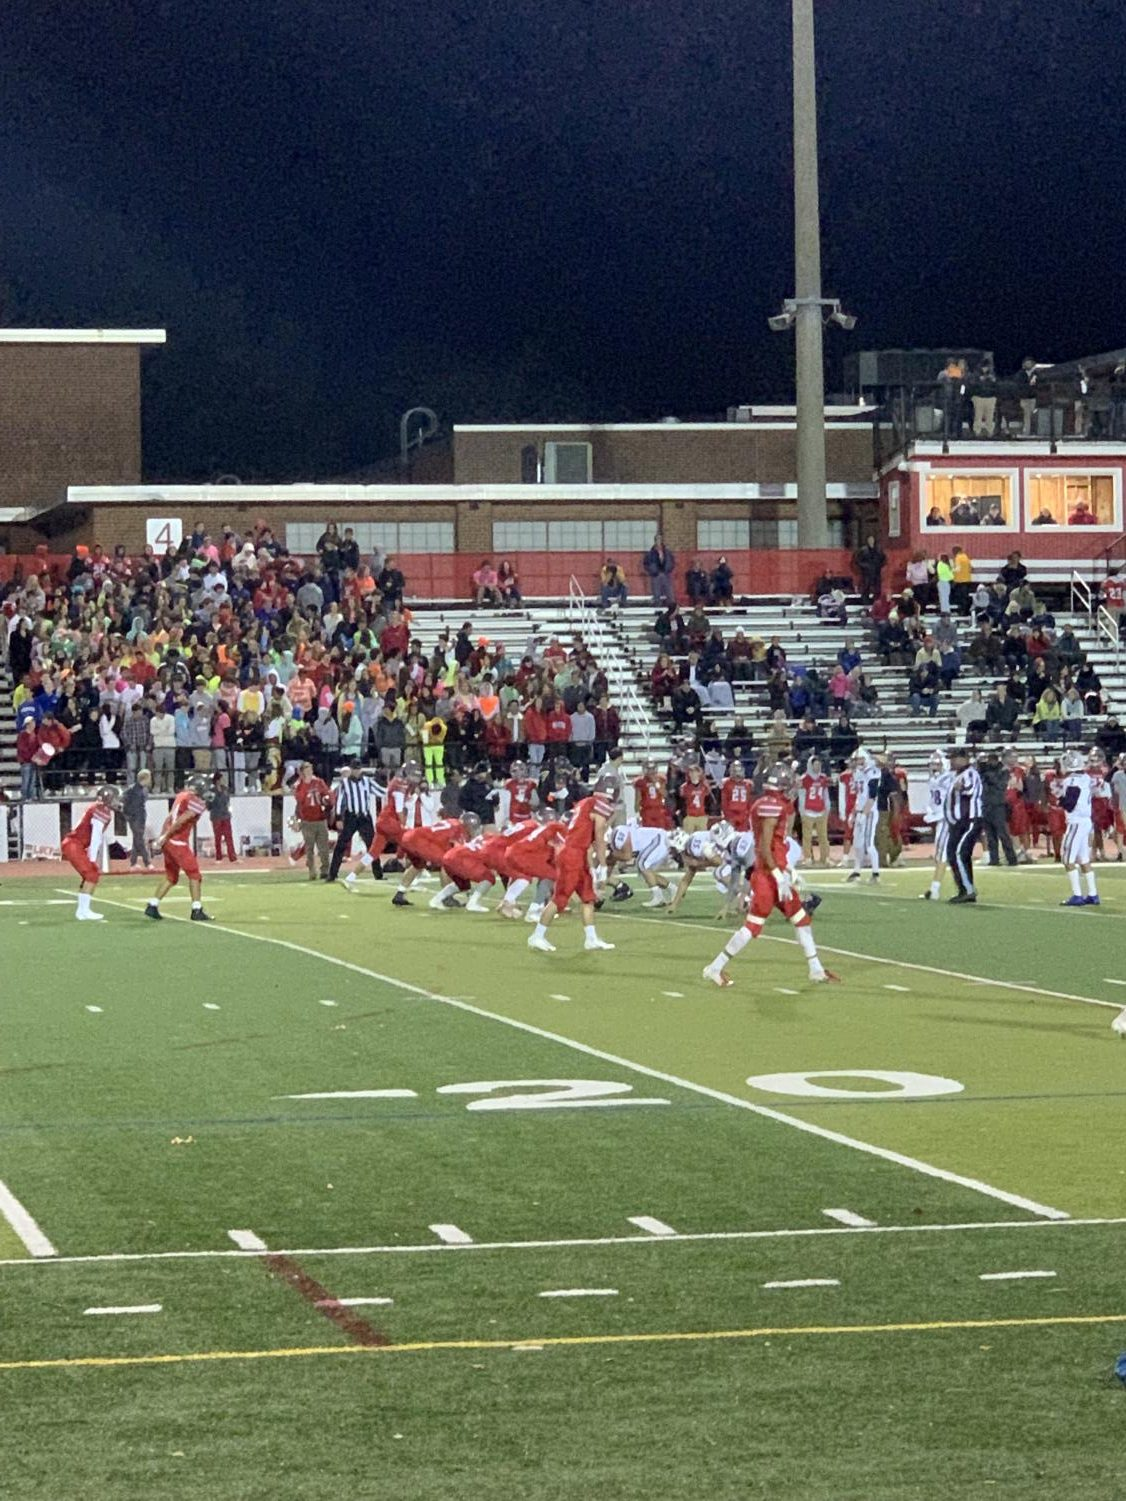 McLean varsity football team is on offense against Washington Liberty. It is the first quarter and the game is getting exciting.